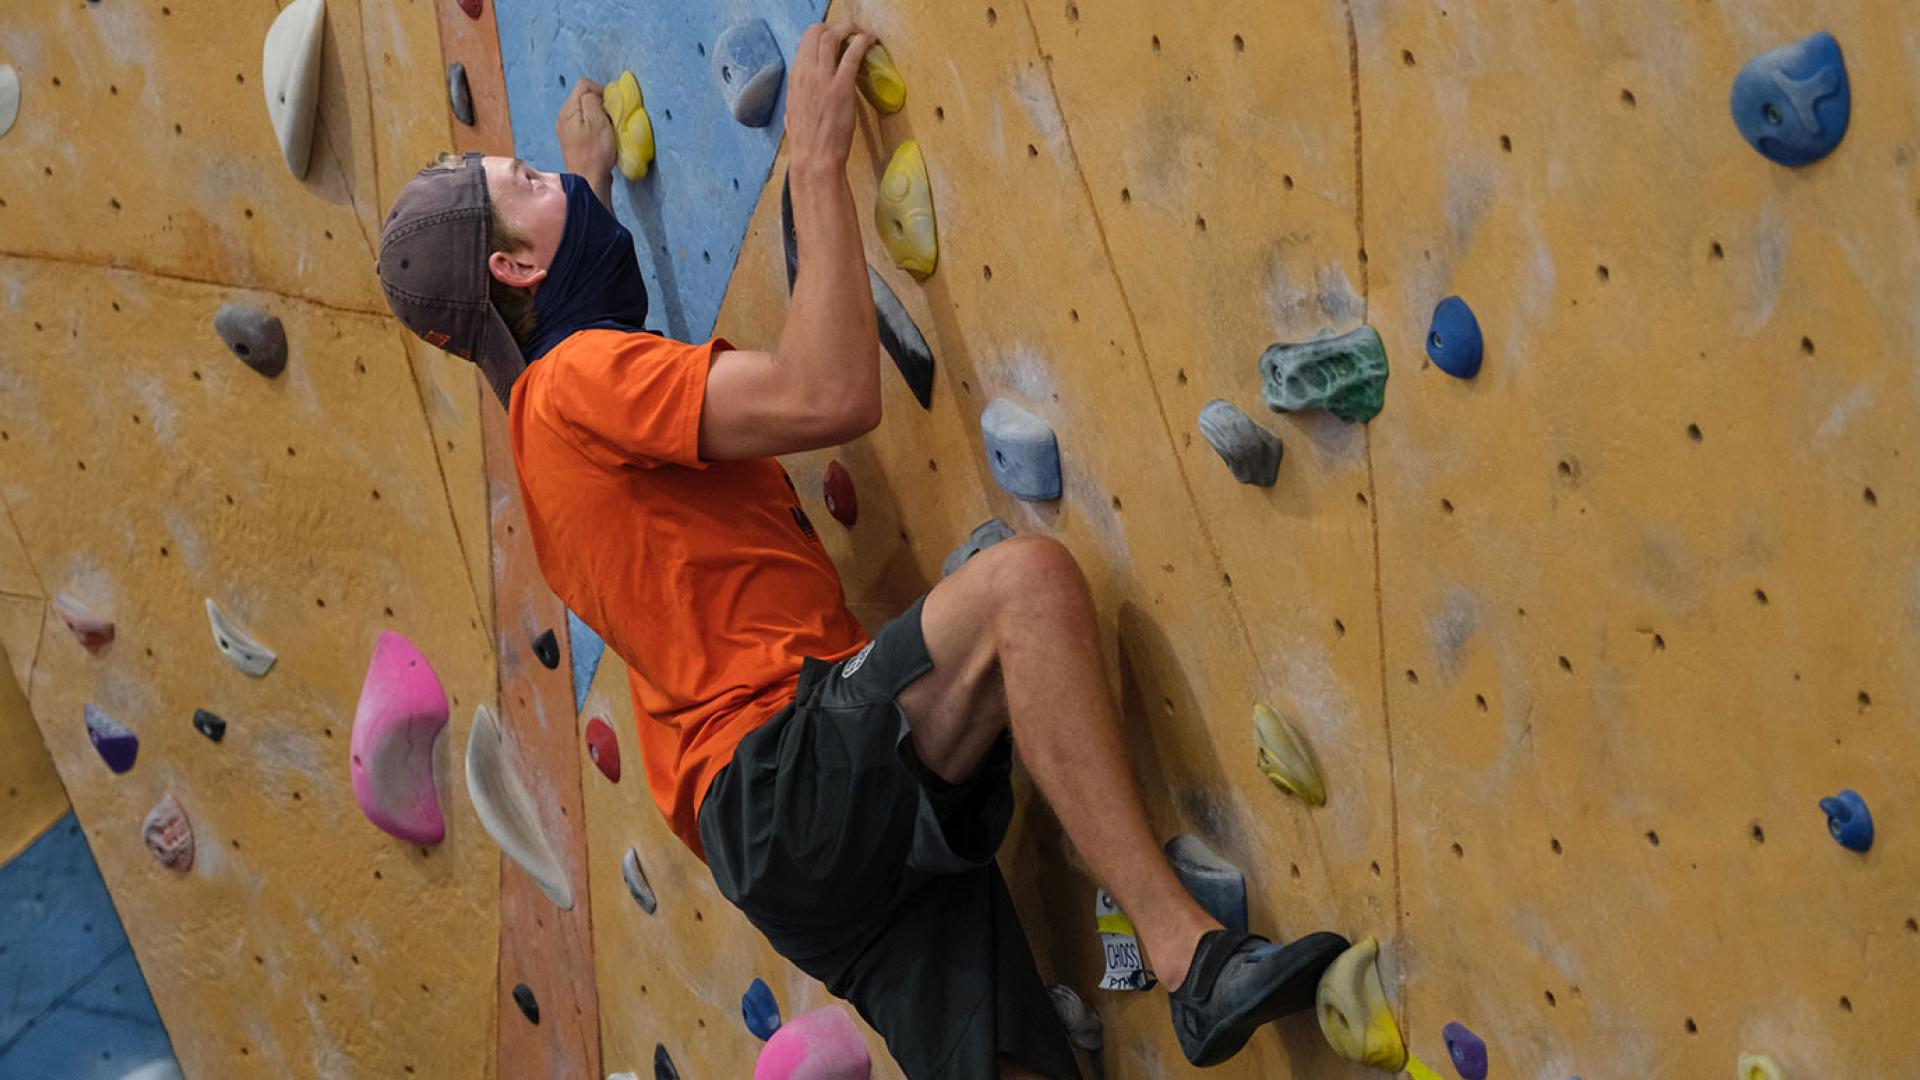 climbing and bouldering at uva